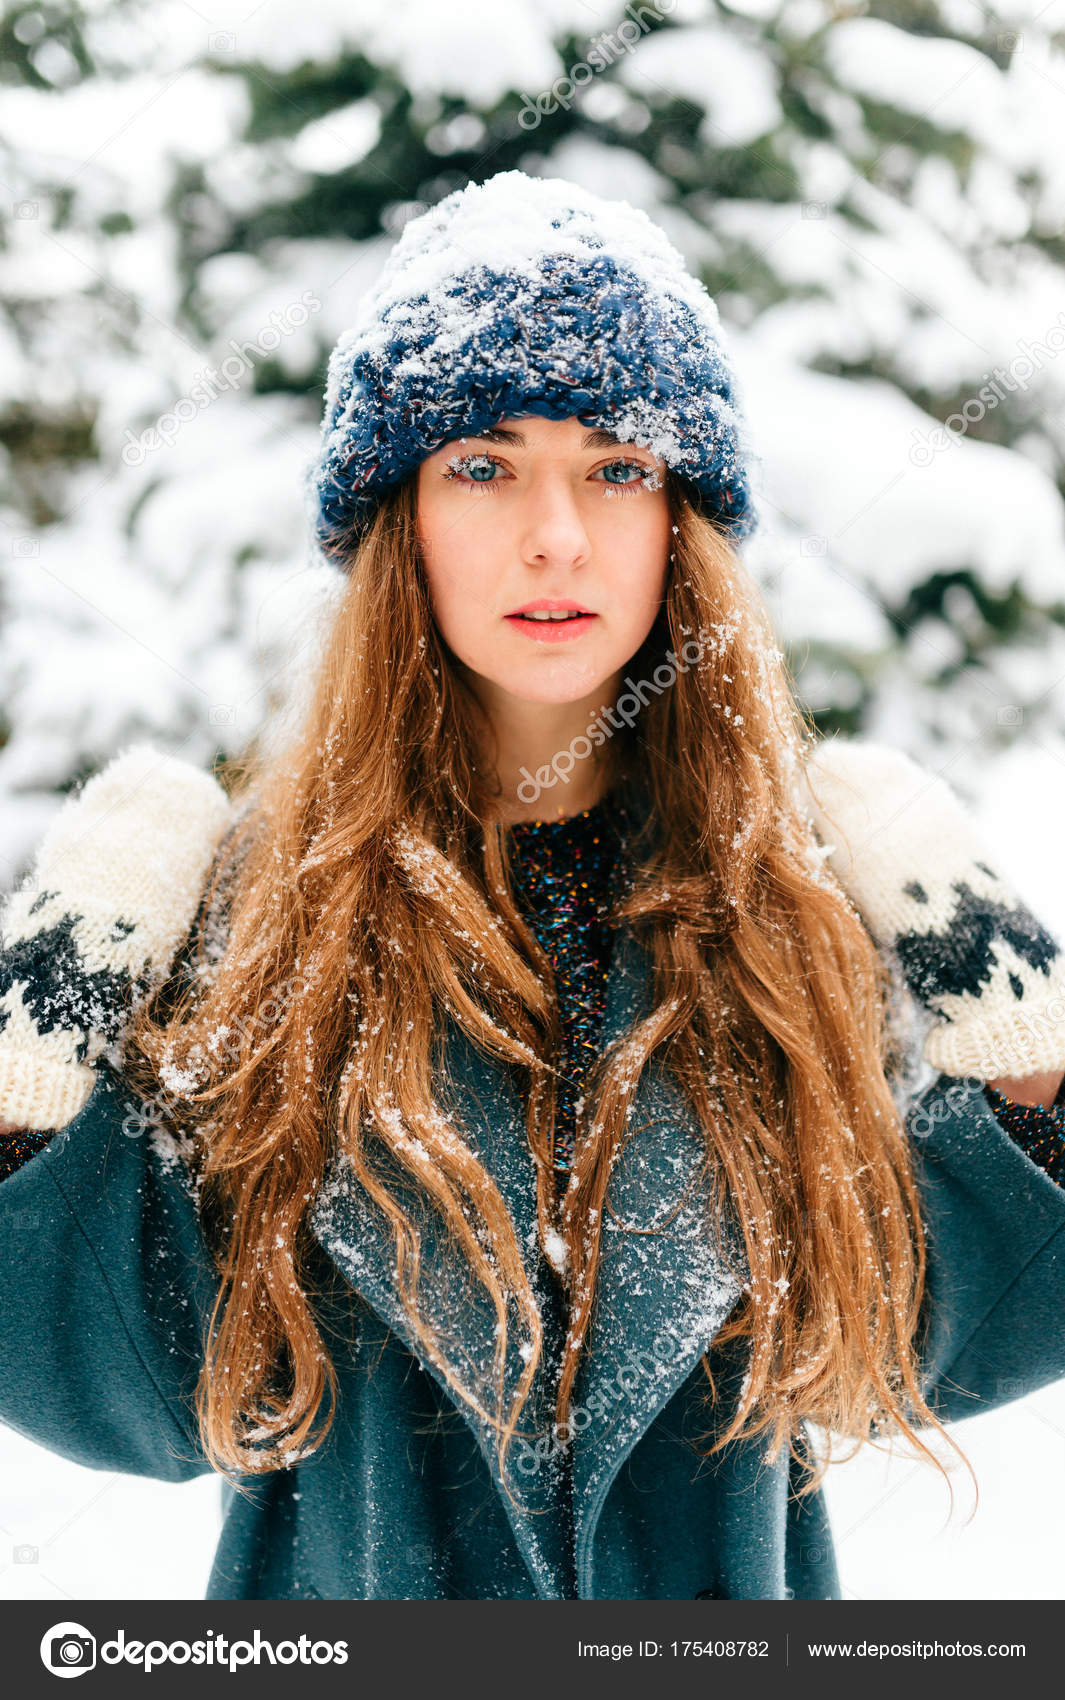 Snow queen young girl with amazing beautiful face blue fantsastic eyes and long perfect hair closeup